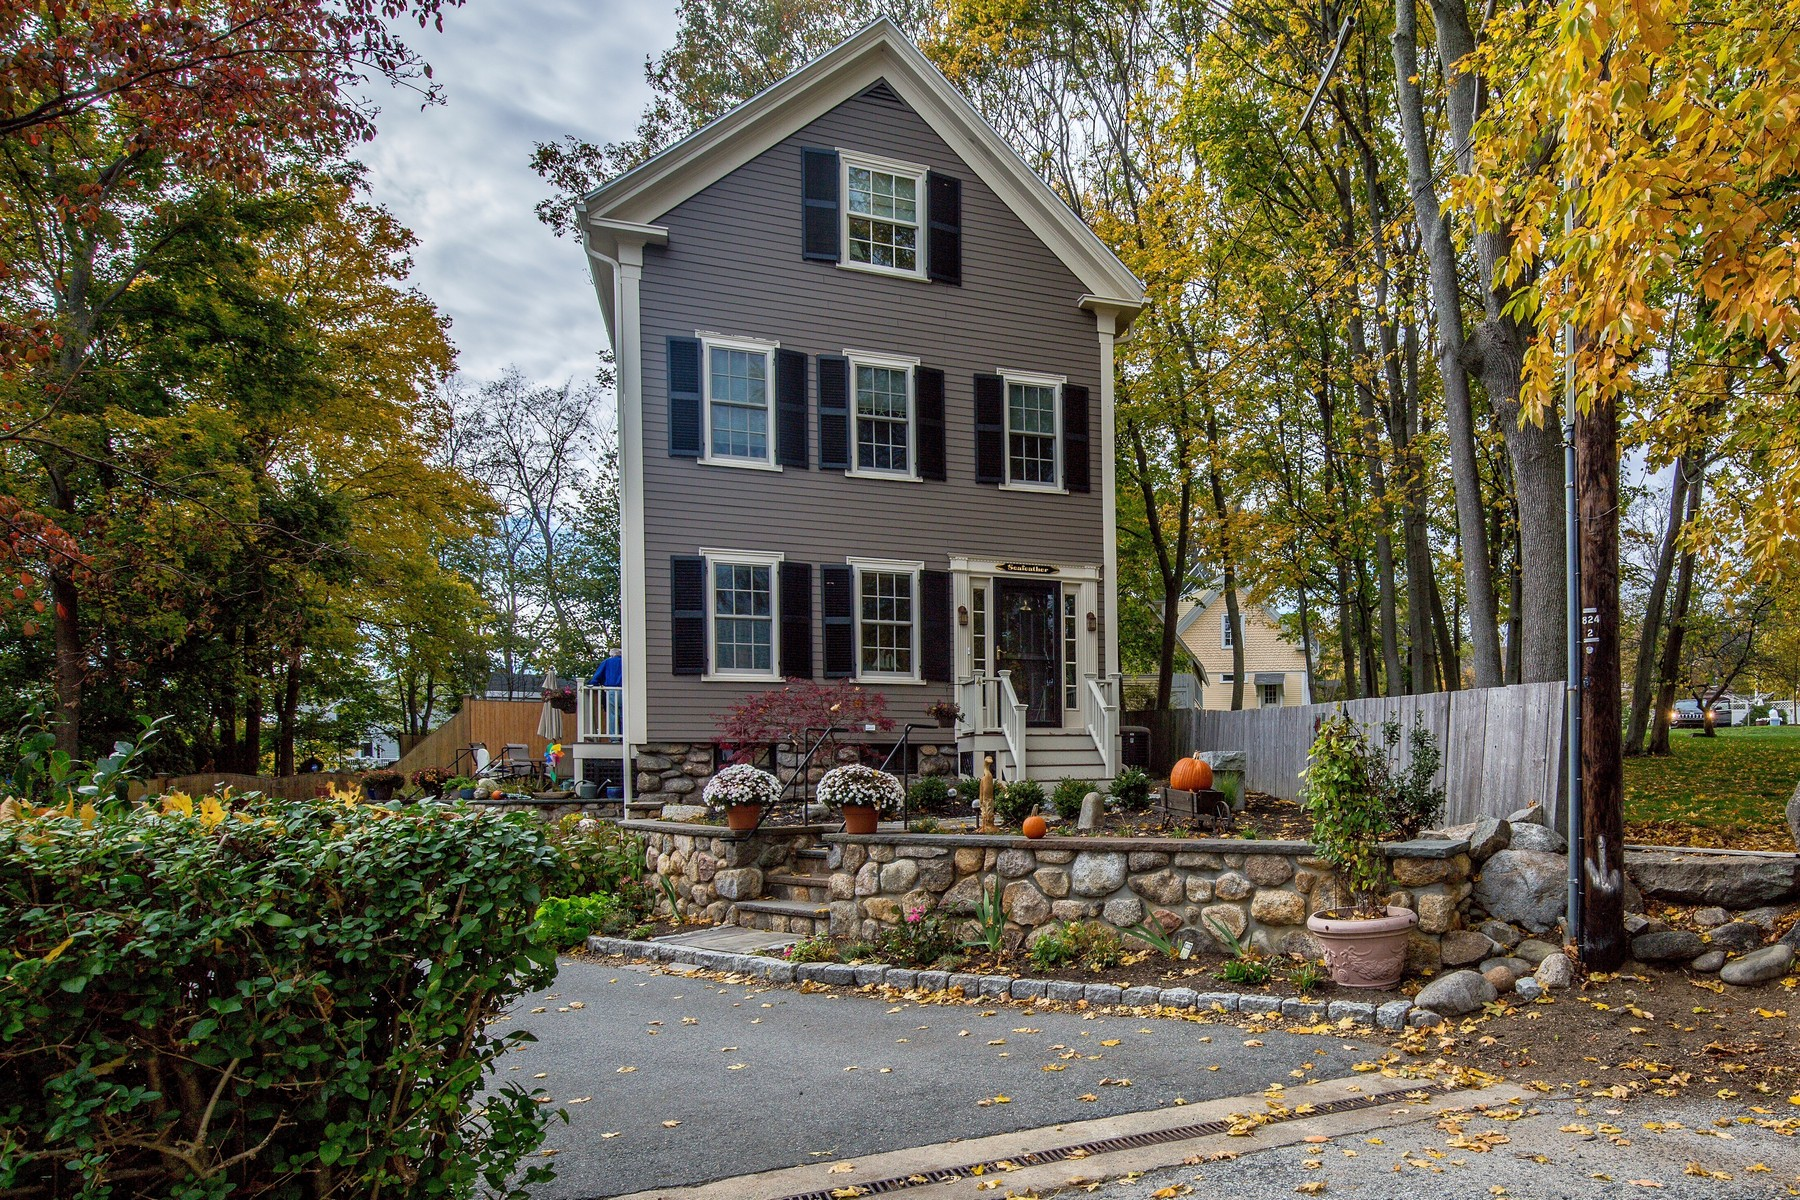 Single Family Home for Sale at Heart of Rockport Village 4 King Street Court Rockport, Massachusetts, 01966 United States